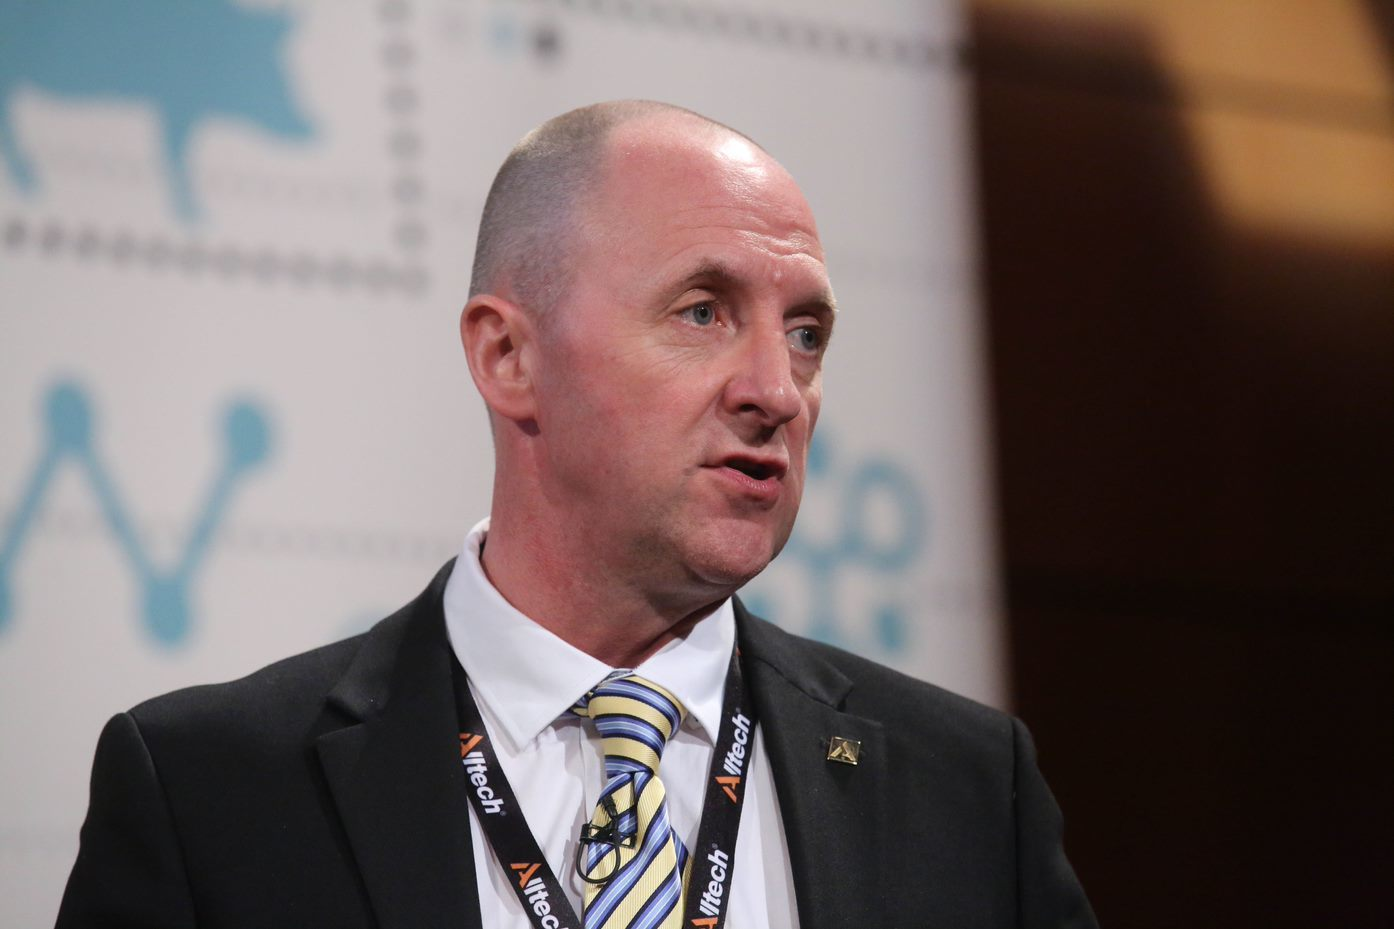 Ian Leach, Alltech's retail programmes manager, chaired the ruminant session at the summit